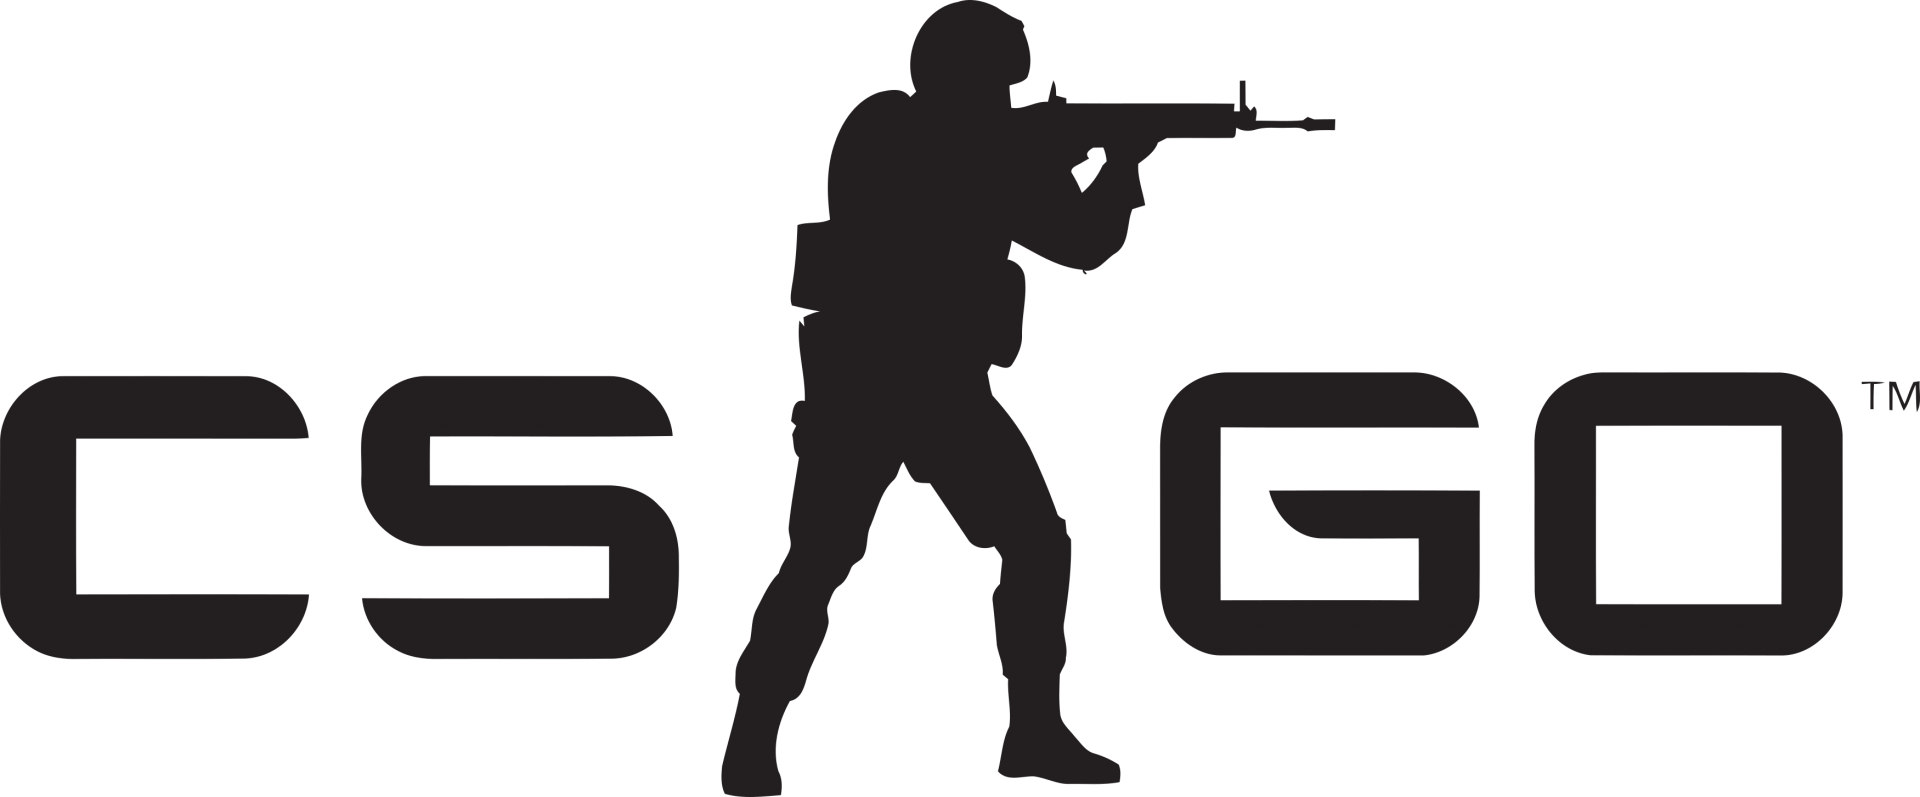 Counter Strike: Global Gffensive (cs:go) - Logo